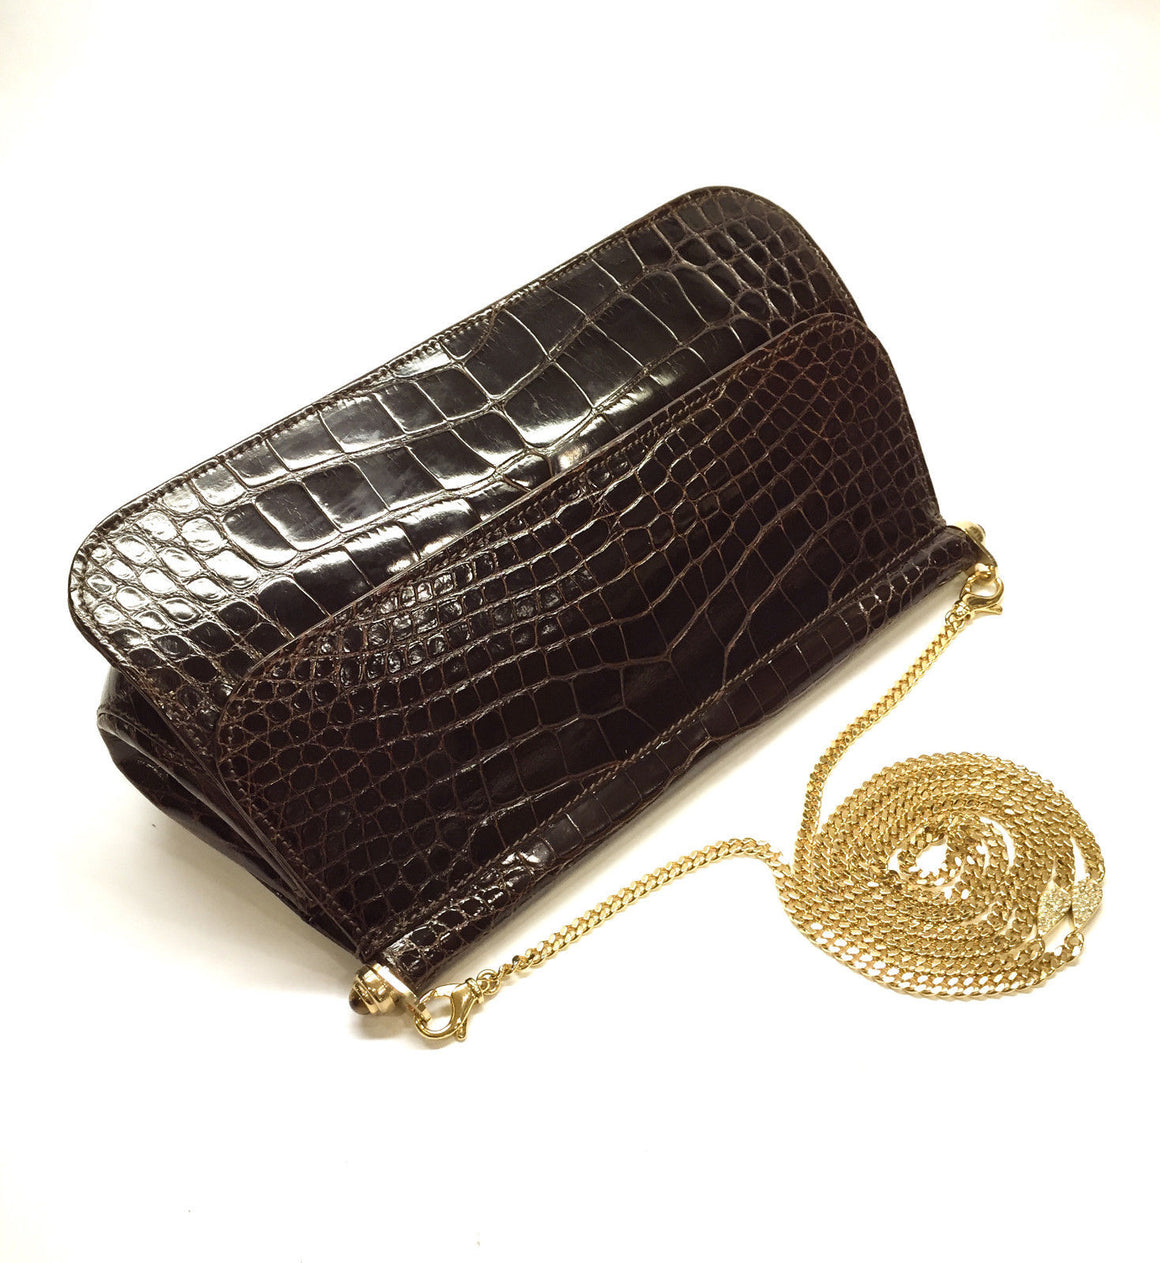 bisbiz.com JUDITH LEIBER  Brown Crocodile/Alligator Gold Chain Strap Clutch/Shoulder Bag - Bis Luxury Resale